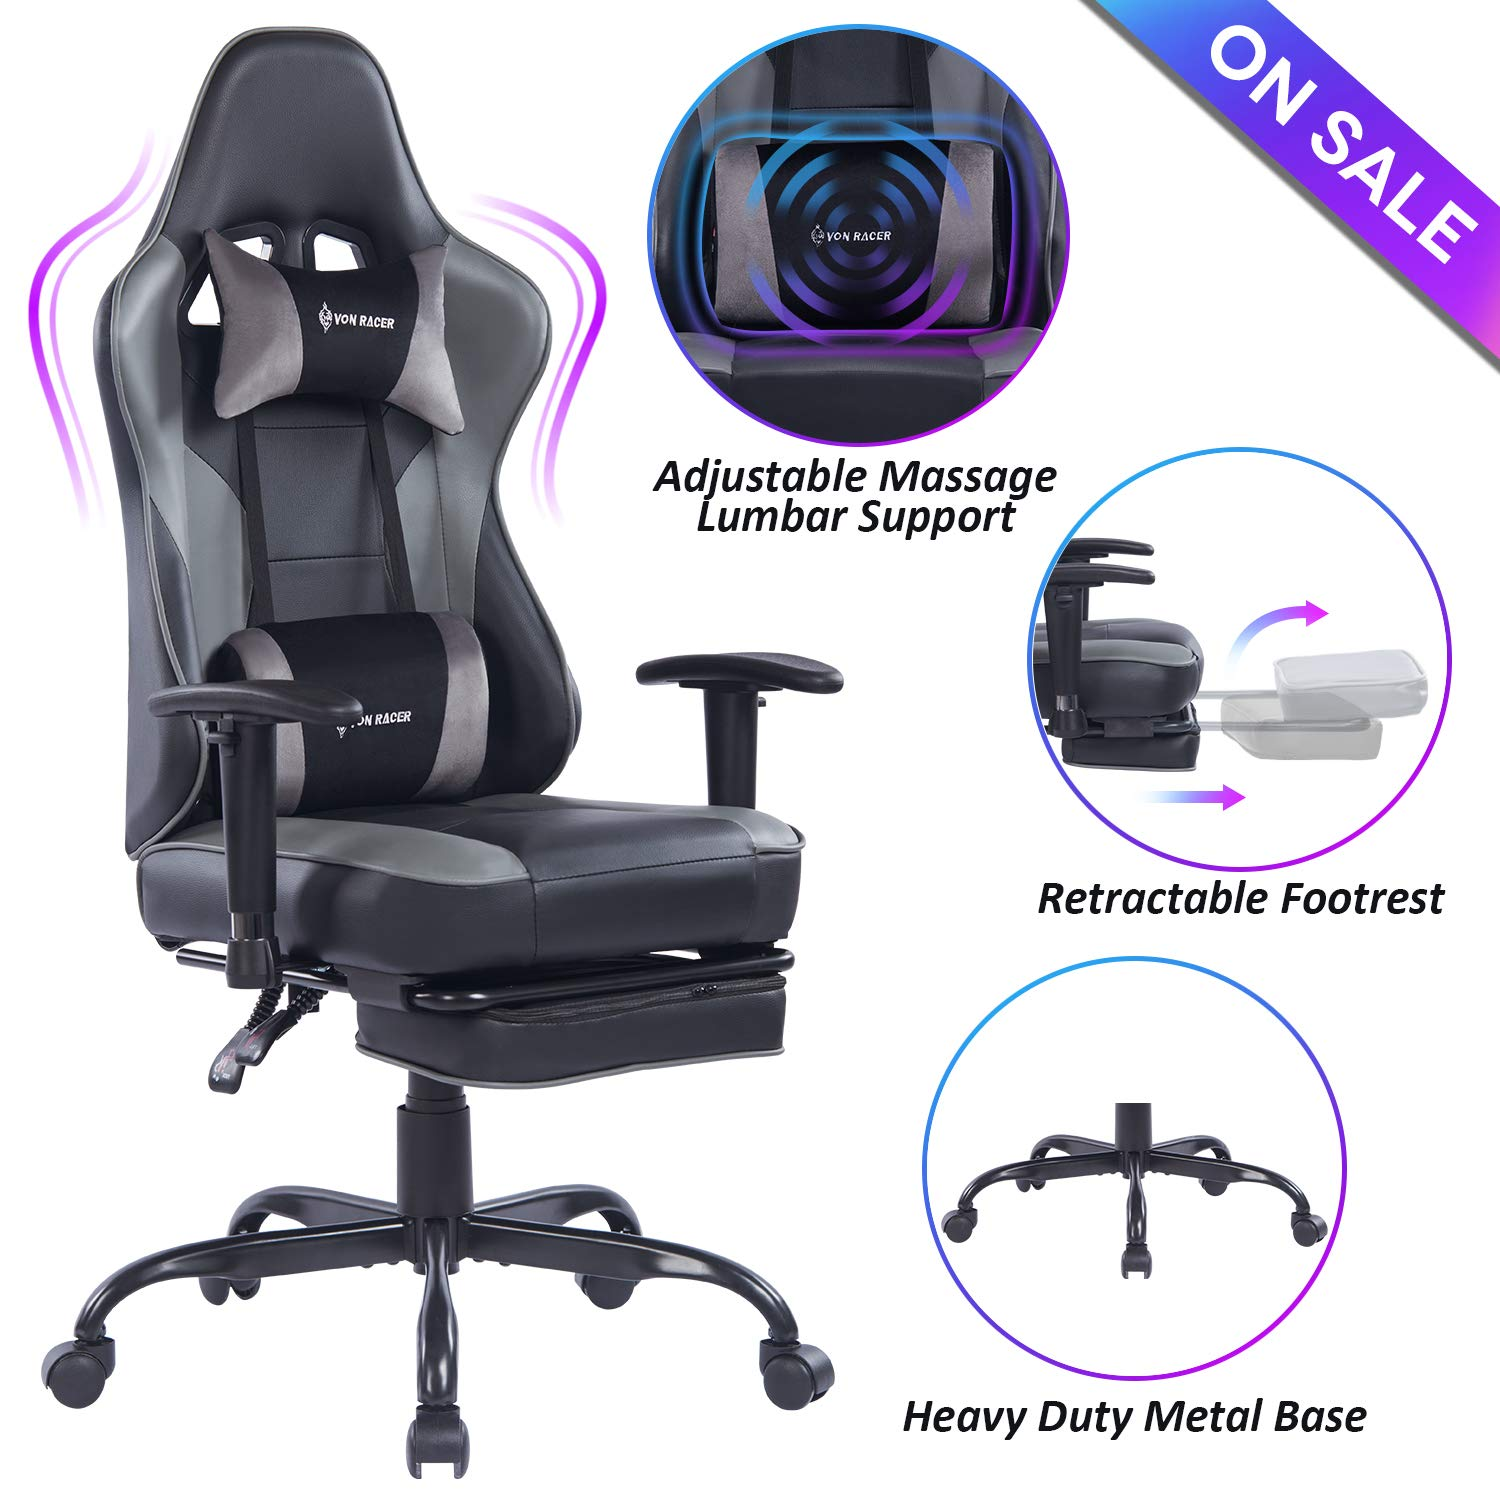 VON RACER Massage Gaming Chair – High Back Racing PC Computer Desk Office Chair Swivel Ergonomic Executive Leather Chair with Footrest and Adjustable Armrests, Gray Black